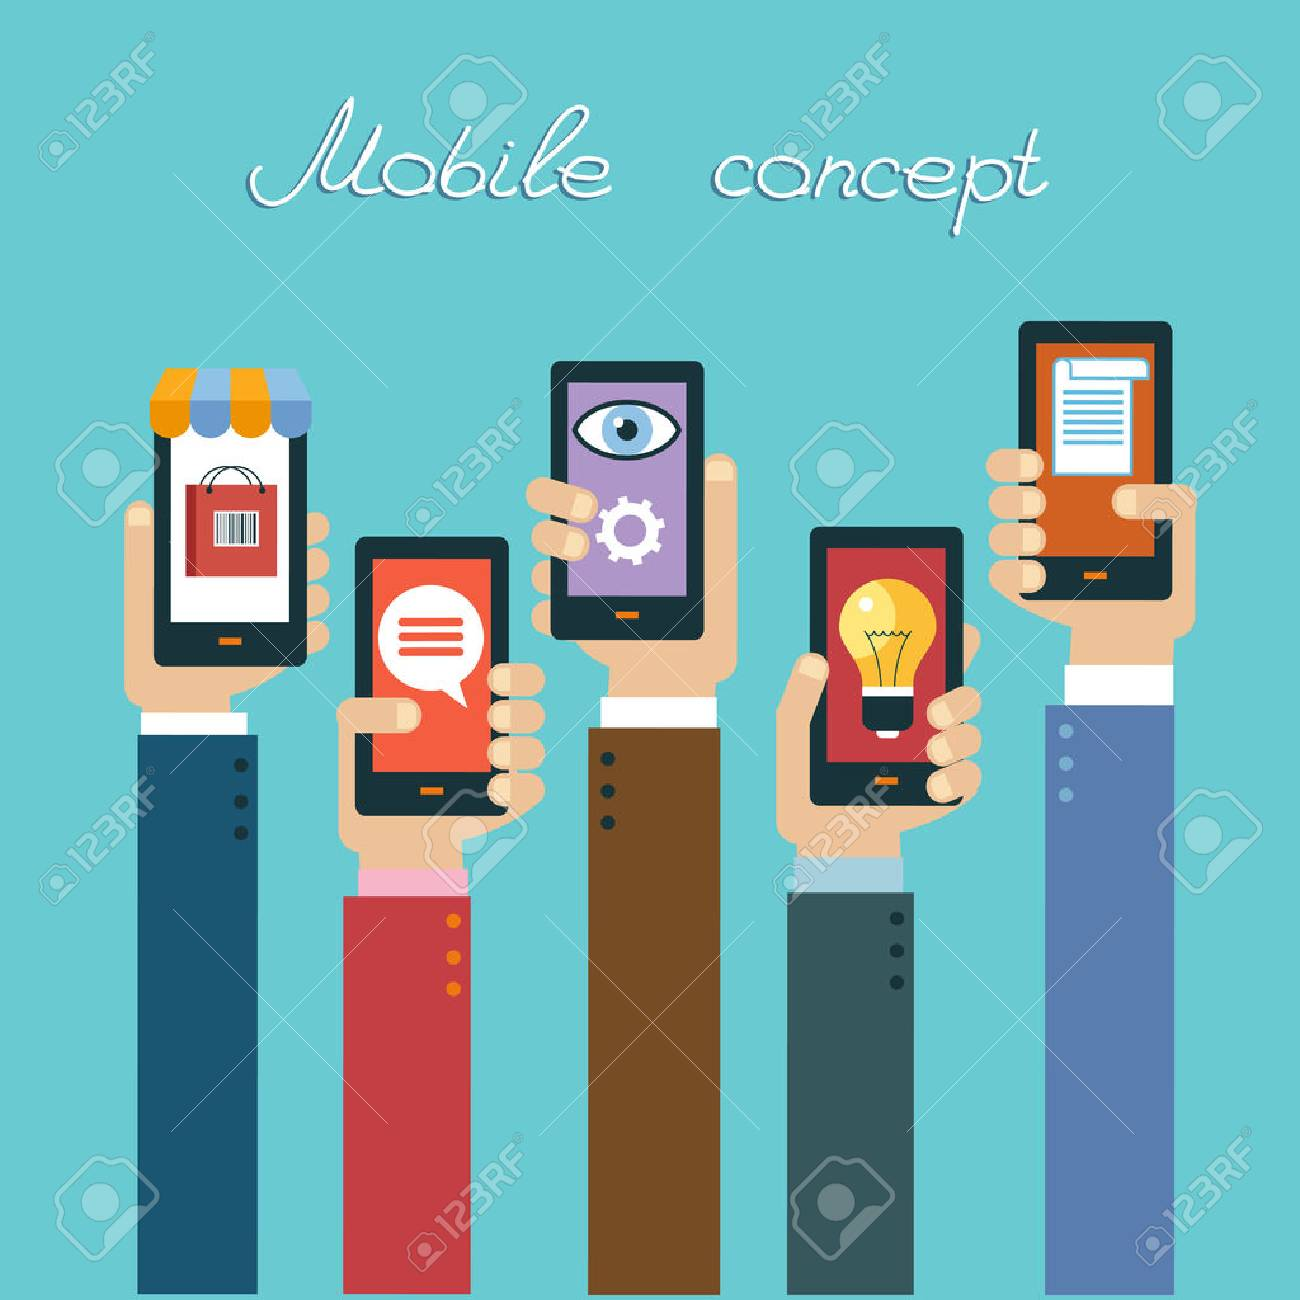 Mobile apps concept. Flat design vector illustration. Human hand with mobile phone and interface icons - 59138547